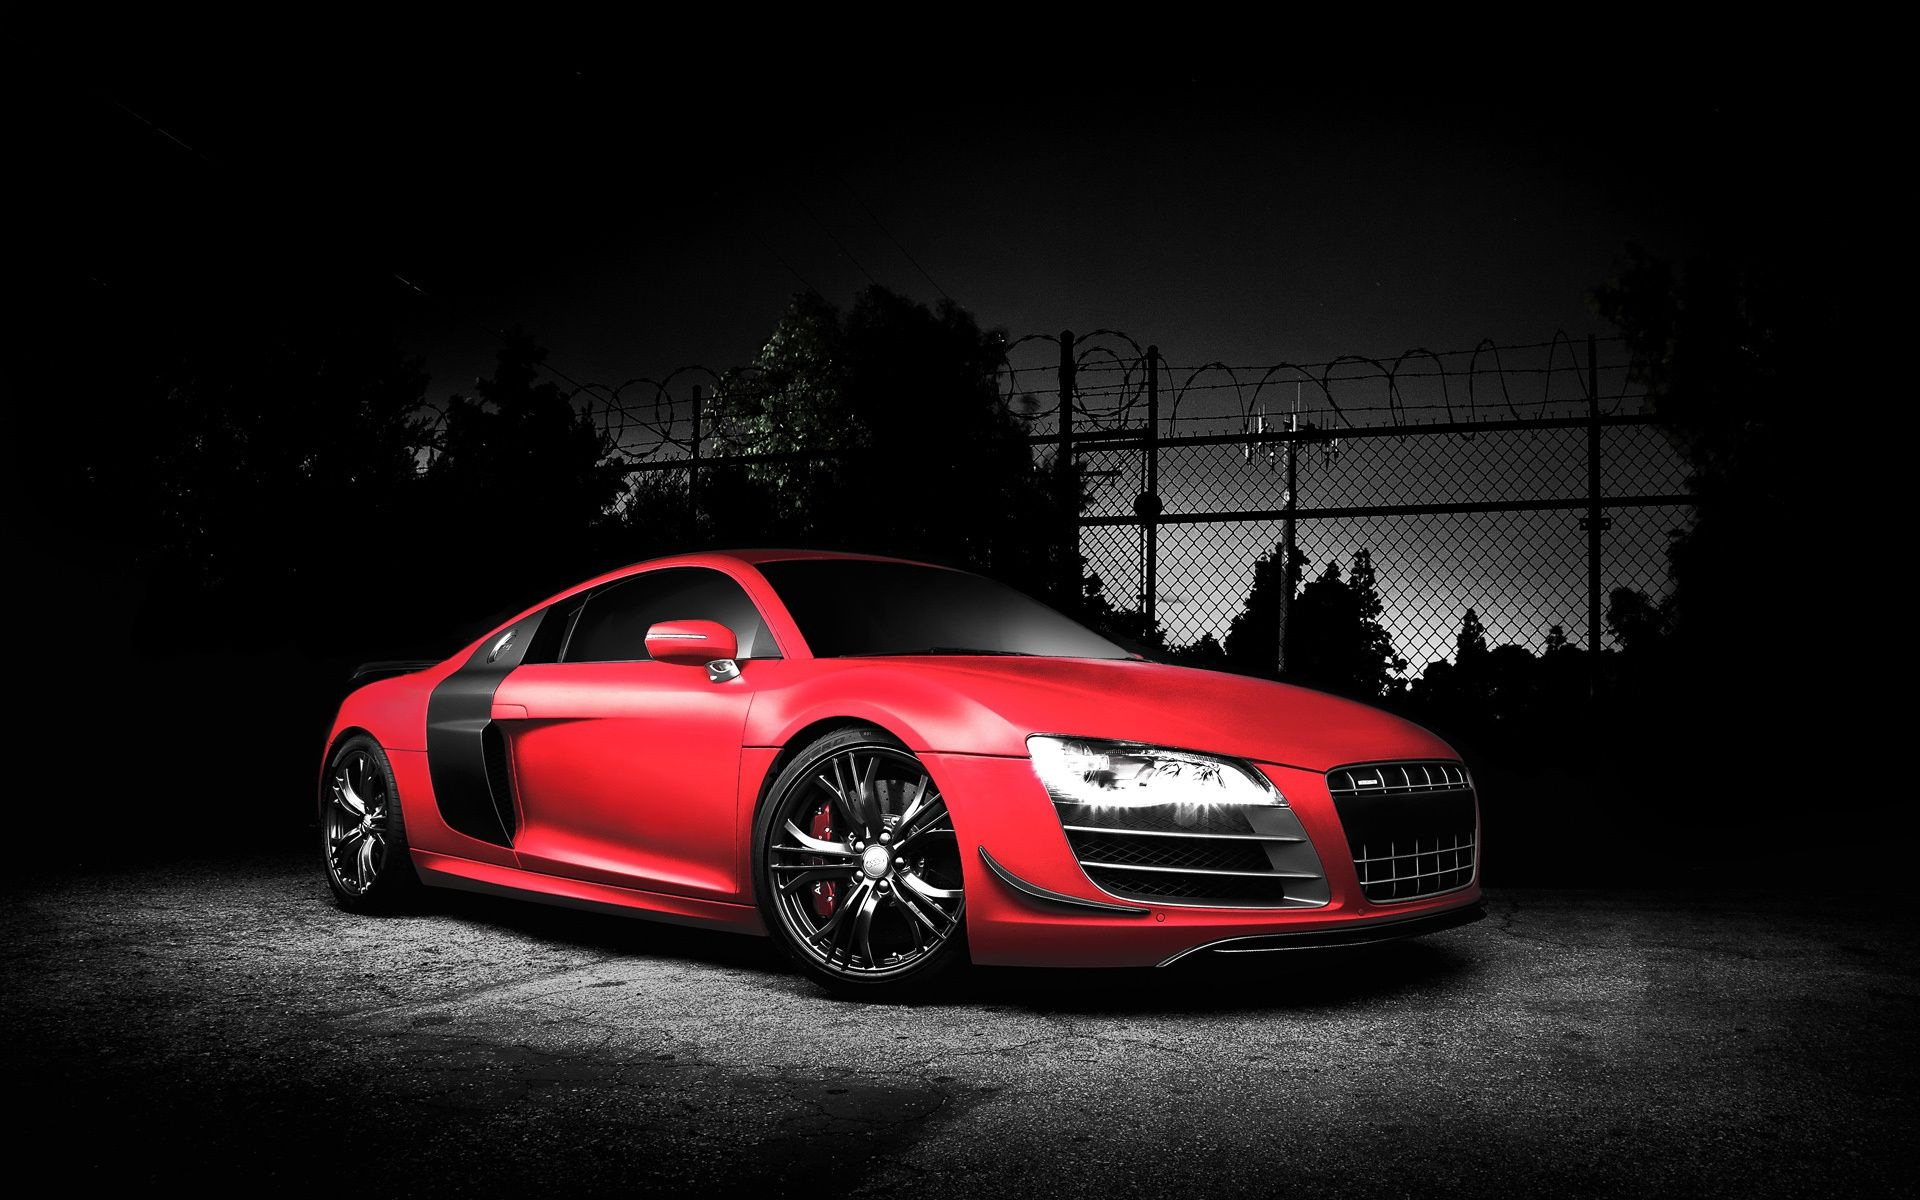 audi r8 gt rouge wallpaper android droidsoft. Black Bedroom Furniture Sets. Home Design Ideas